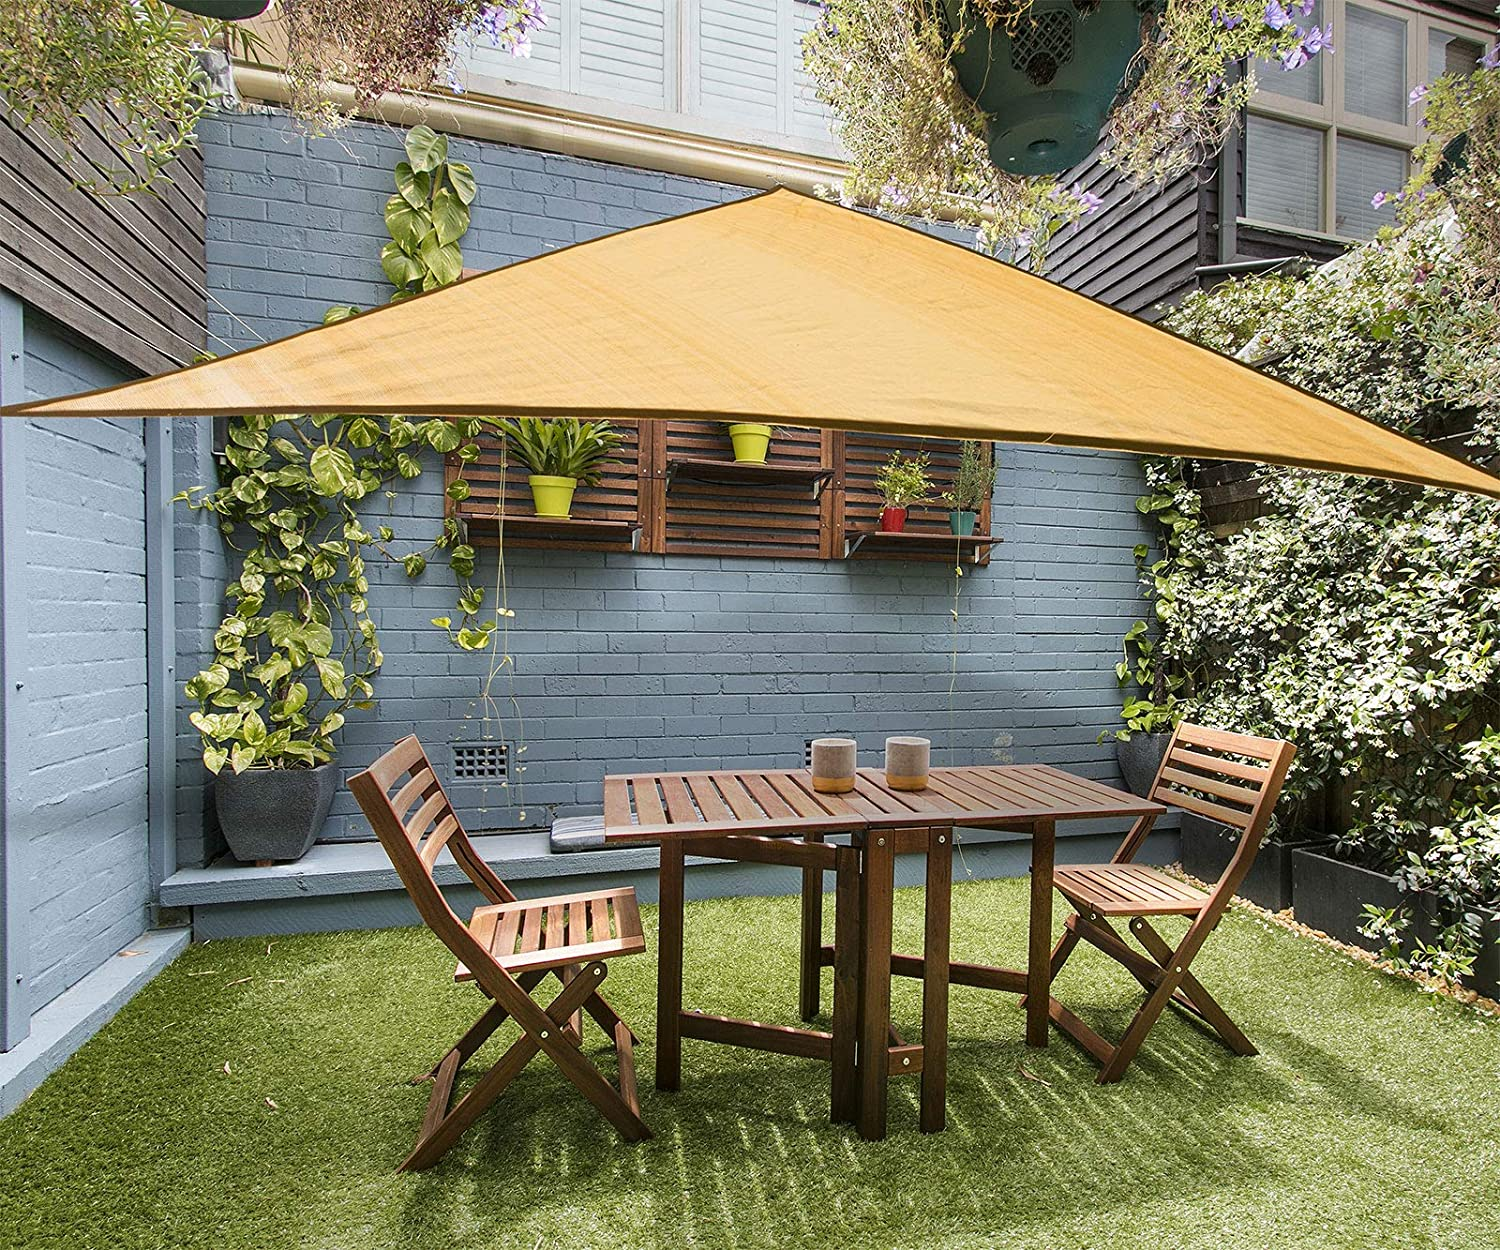 16' Triangle Sun New product! New type Shade Sail Canopy Outdoor Excellent in - Sunburst Durable